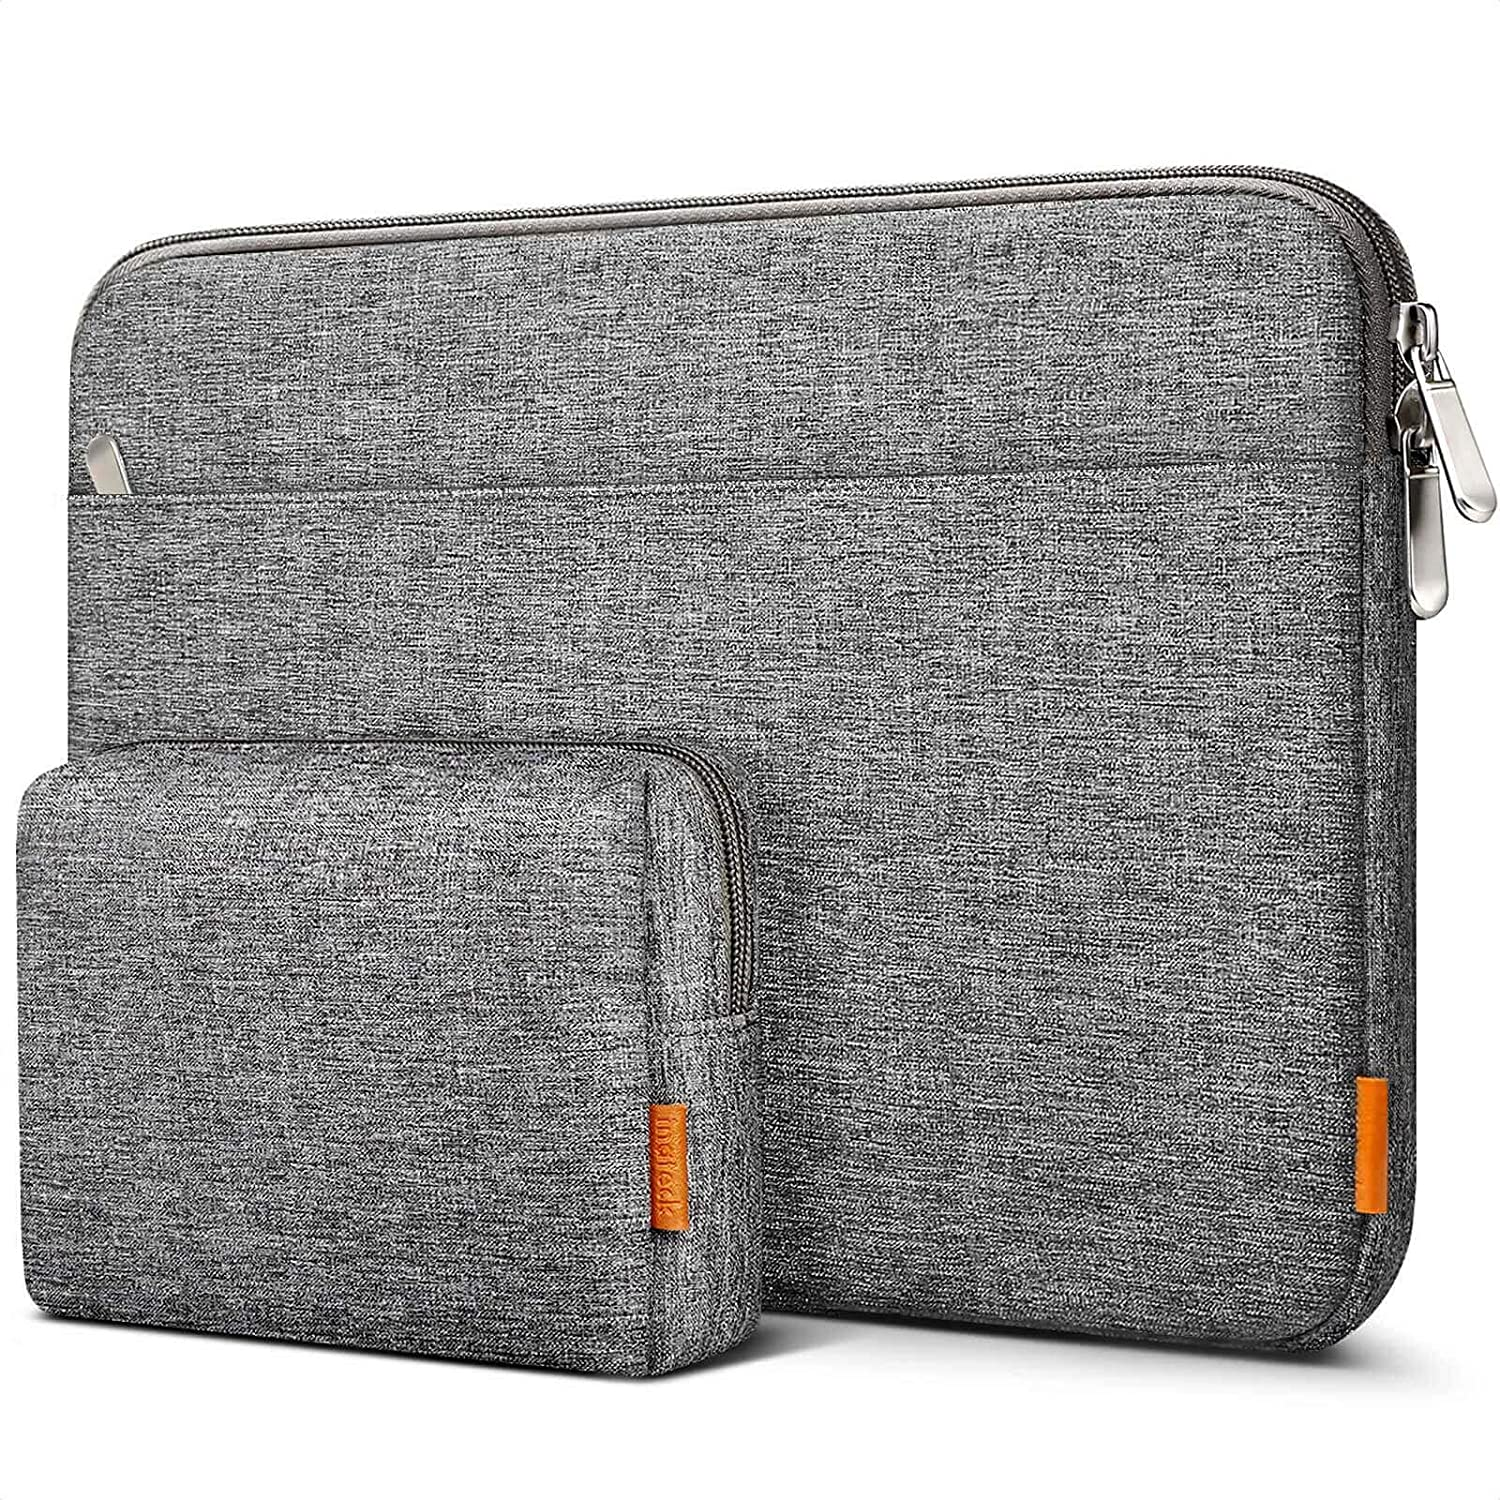 "13-13.5"" Laptop Sleeve Carry Case with Pouch LB01005-13, Gray - Inateck Backpacks"